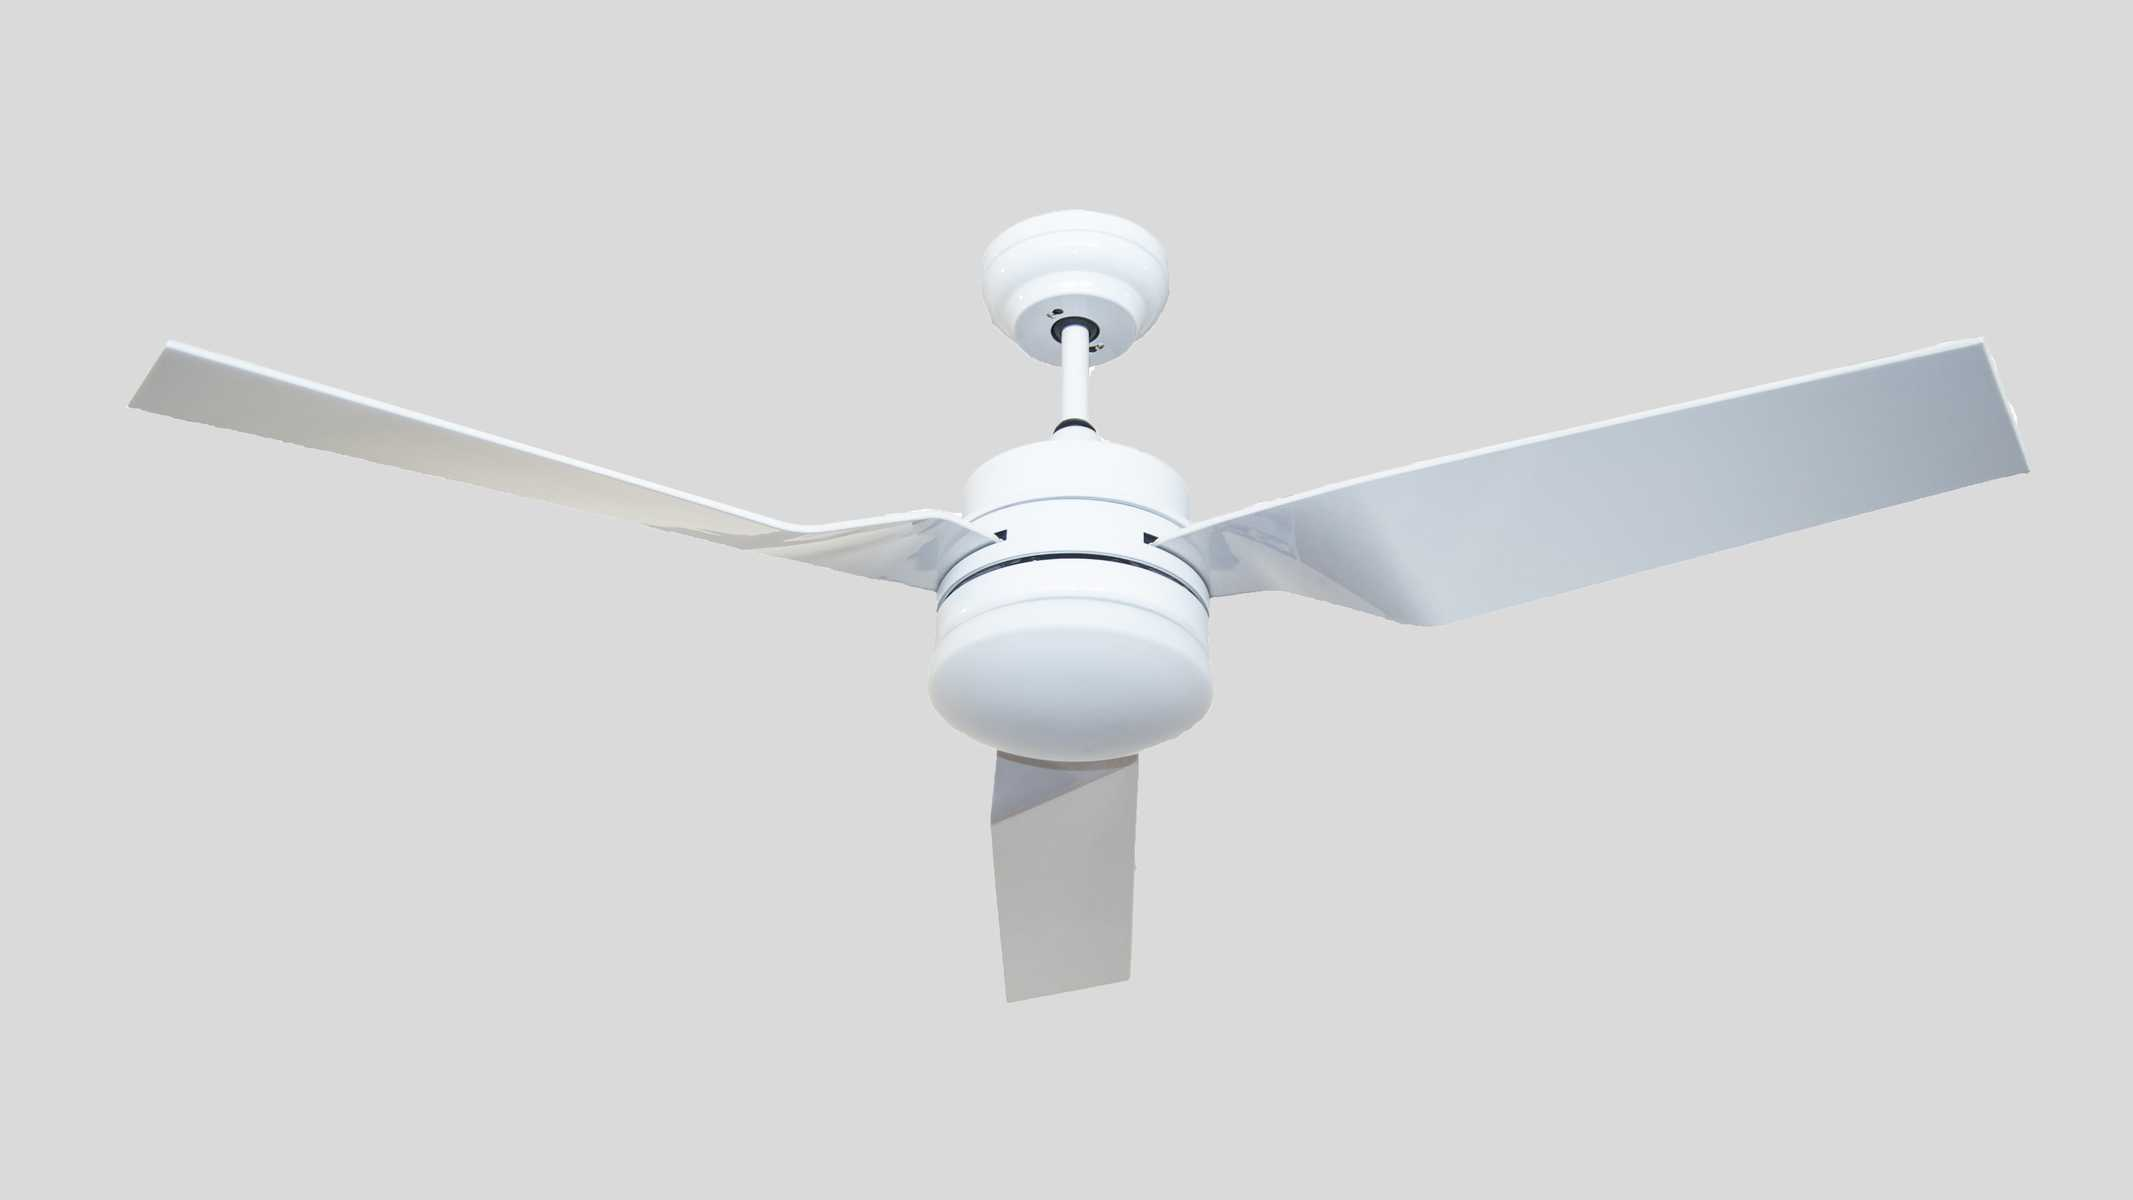 Alsanfan – Profan Frosty Ceiling Fan